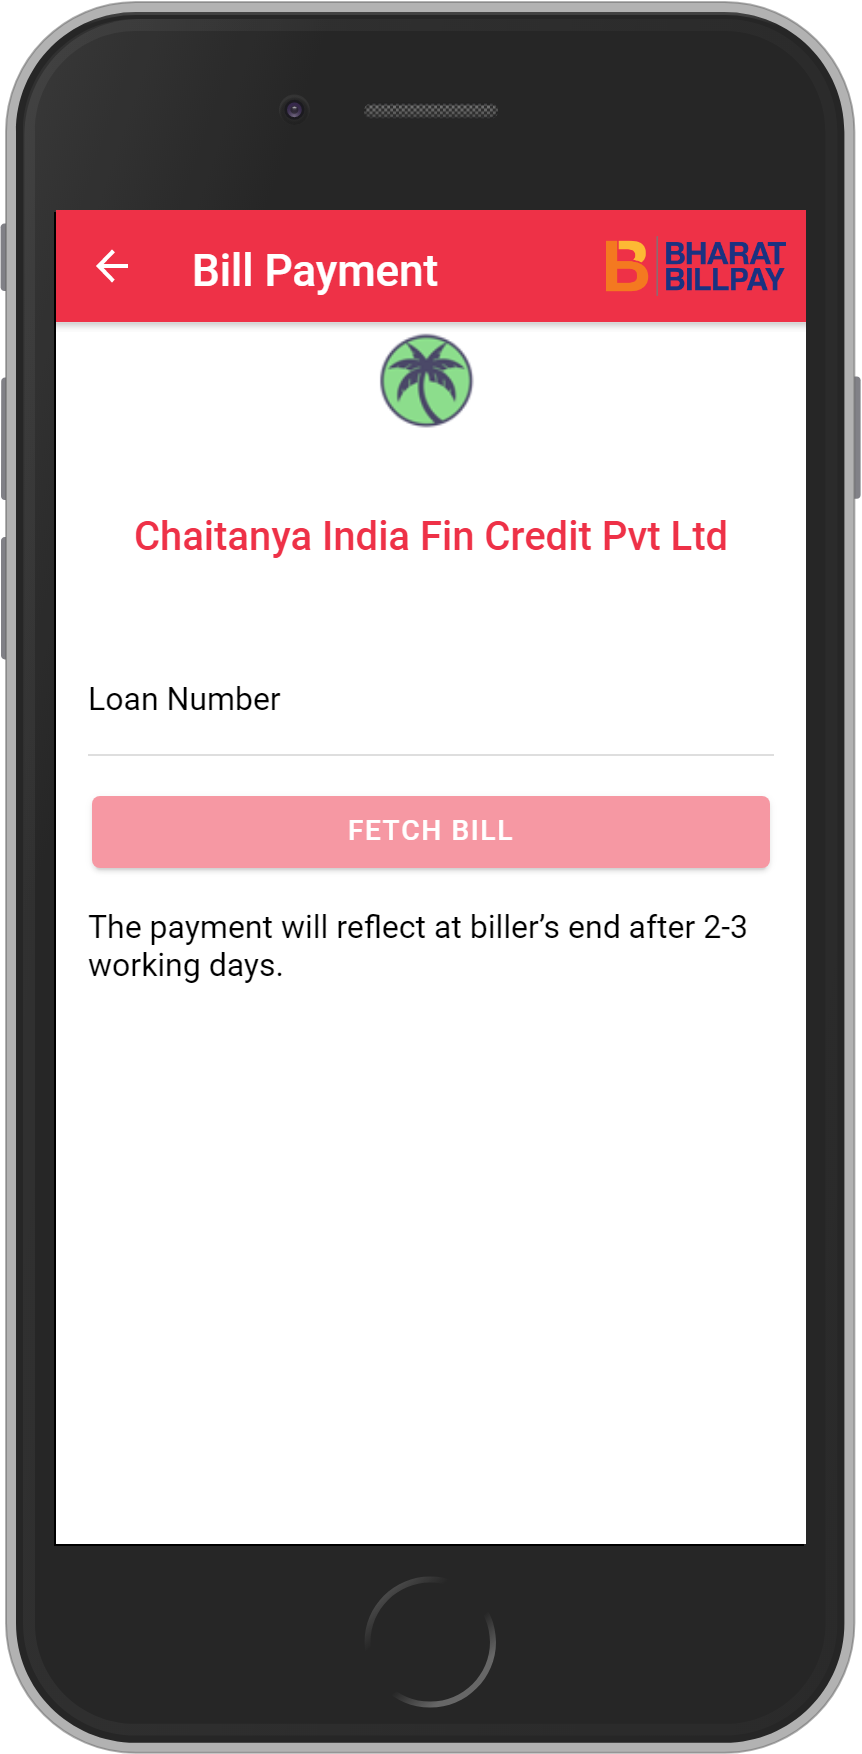 Get UNLIMITED <b>0.1%</b> CASHBACK on Chaitanya India Fin Credit Pvt Ltd Loan Payment.